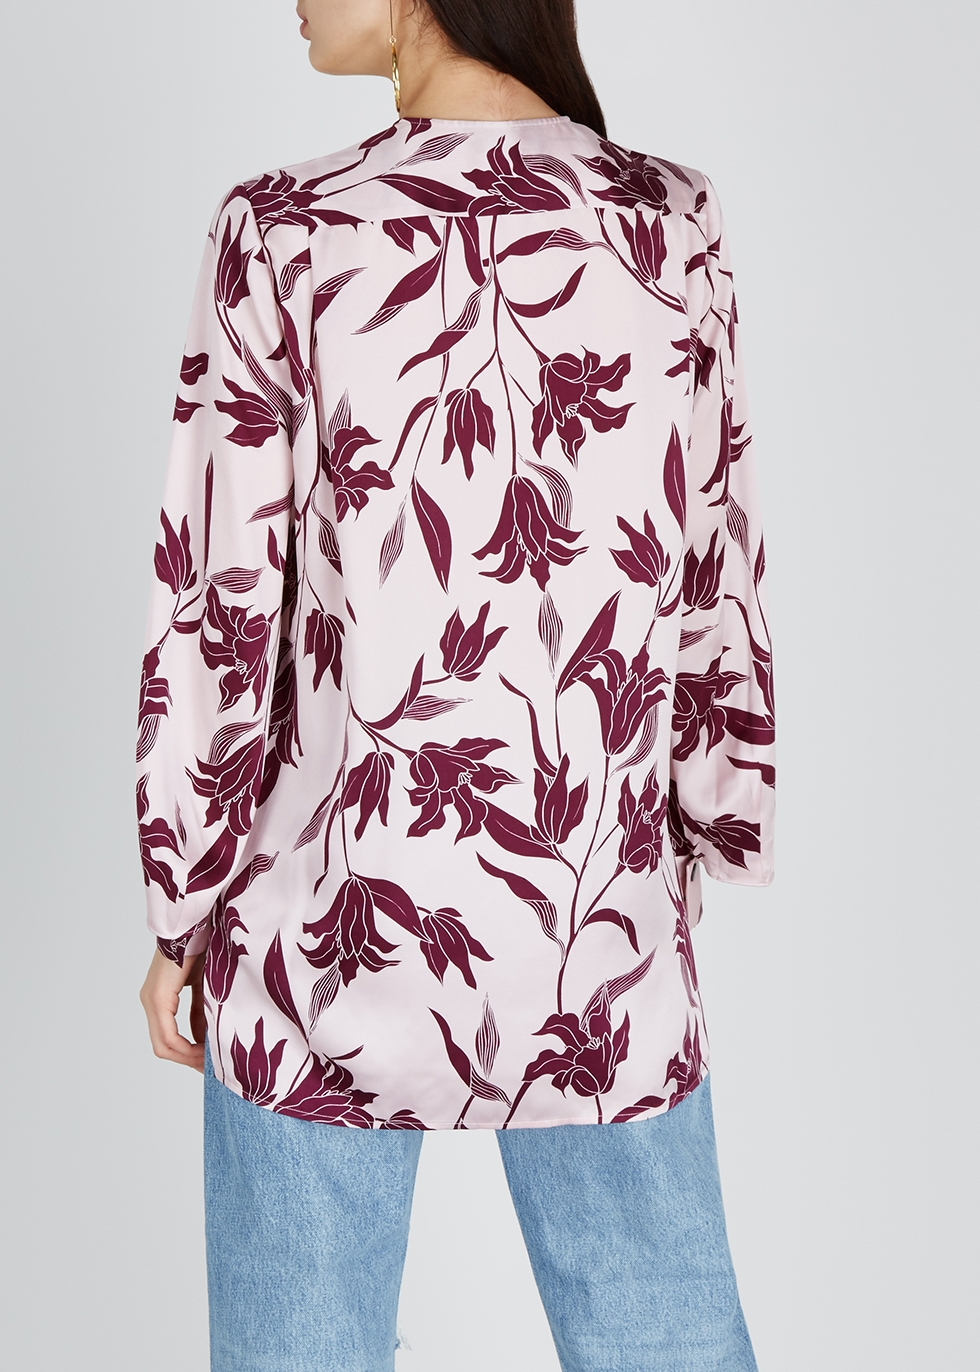 Delainey floral-print silk blouse - Equipment